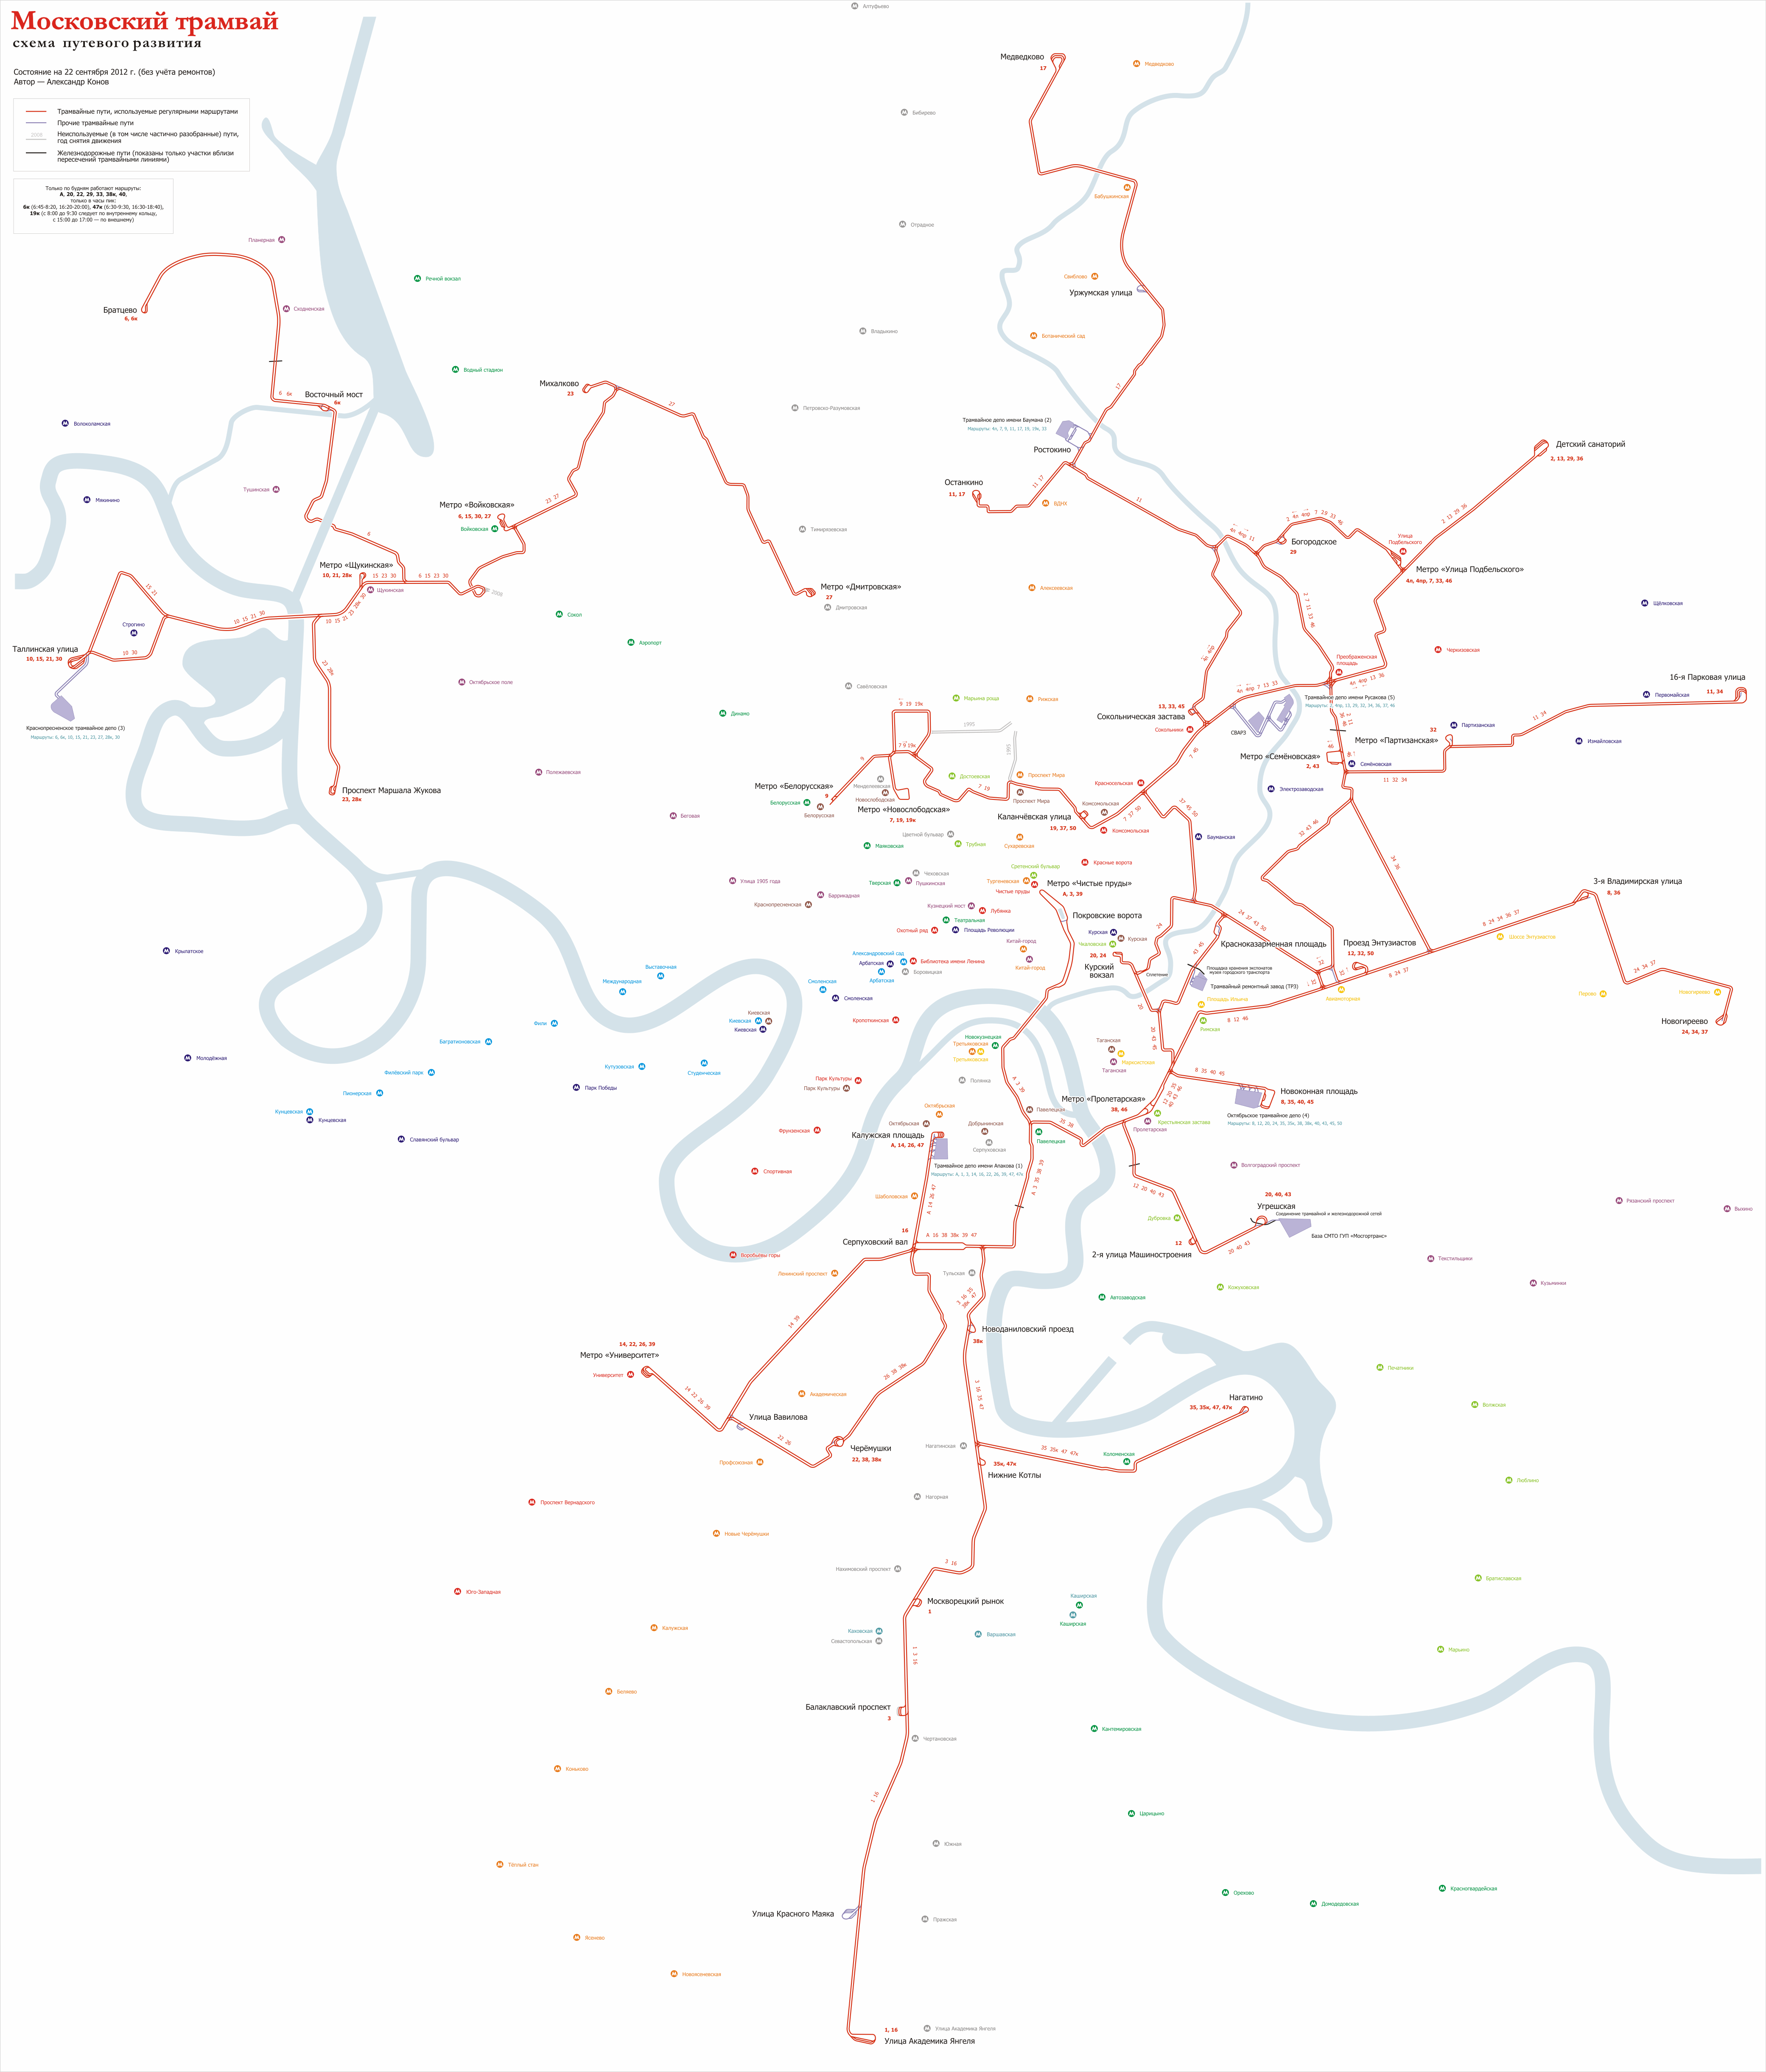 Moscow — Citywide Maps; Moscow — Tramway and Trolleybus Infrastructure Maps